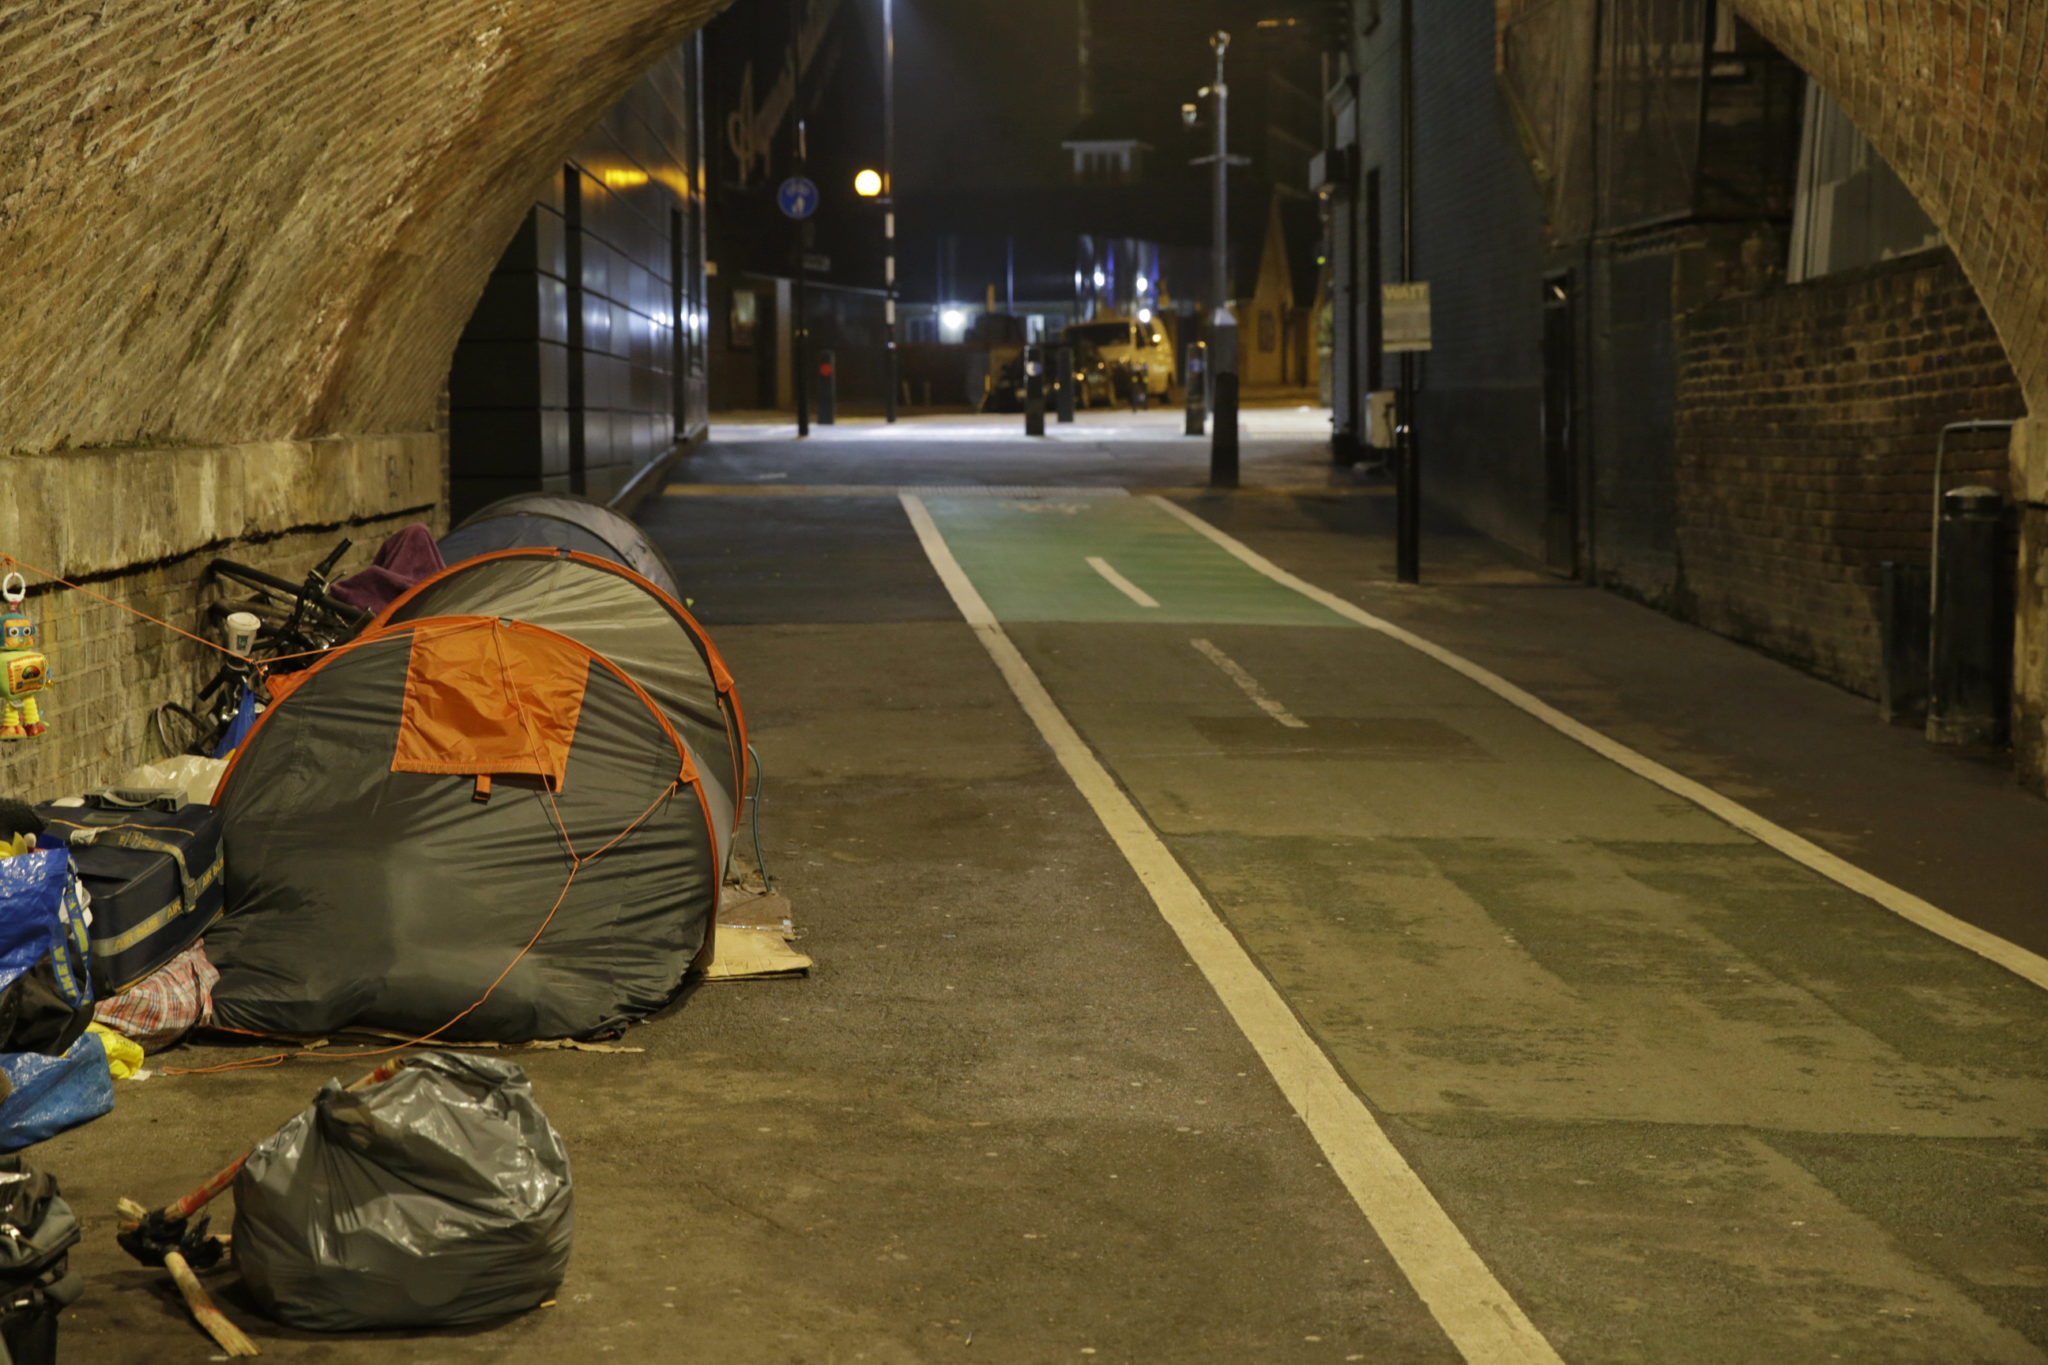 Latest CHAIN figures show further rise in rough sleeping in London